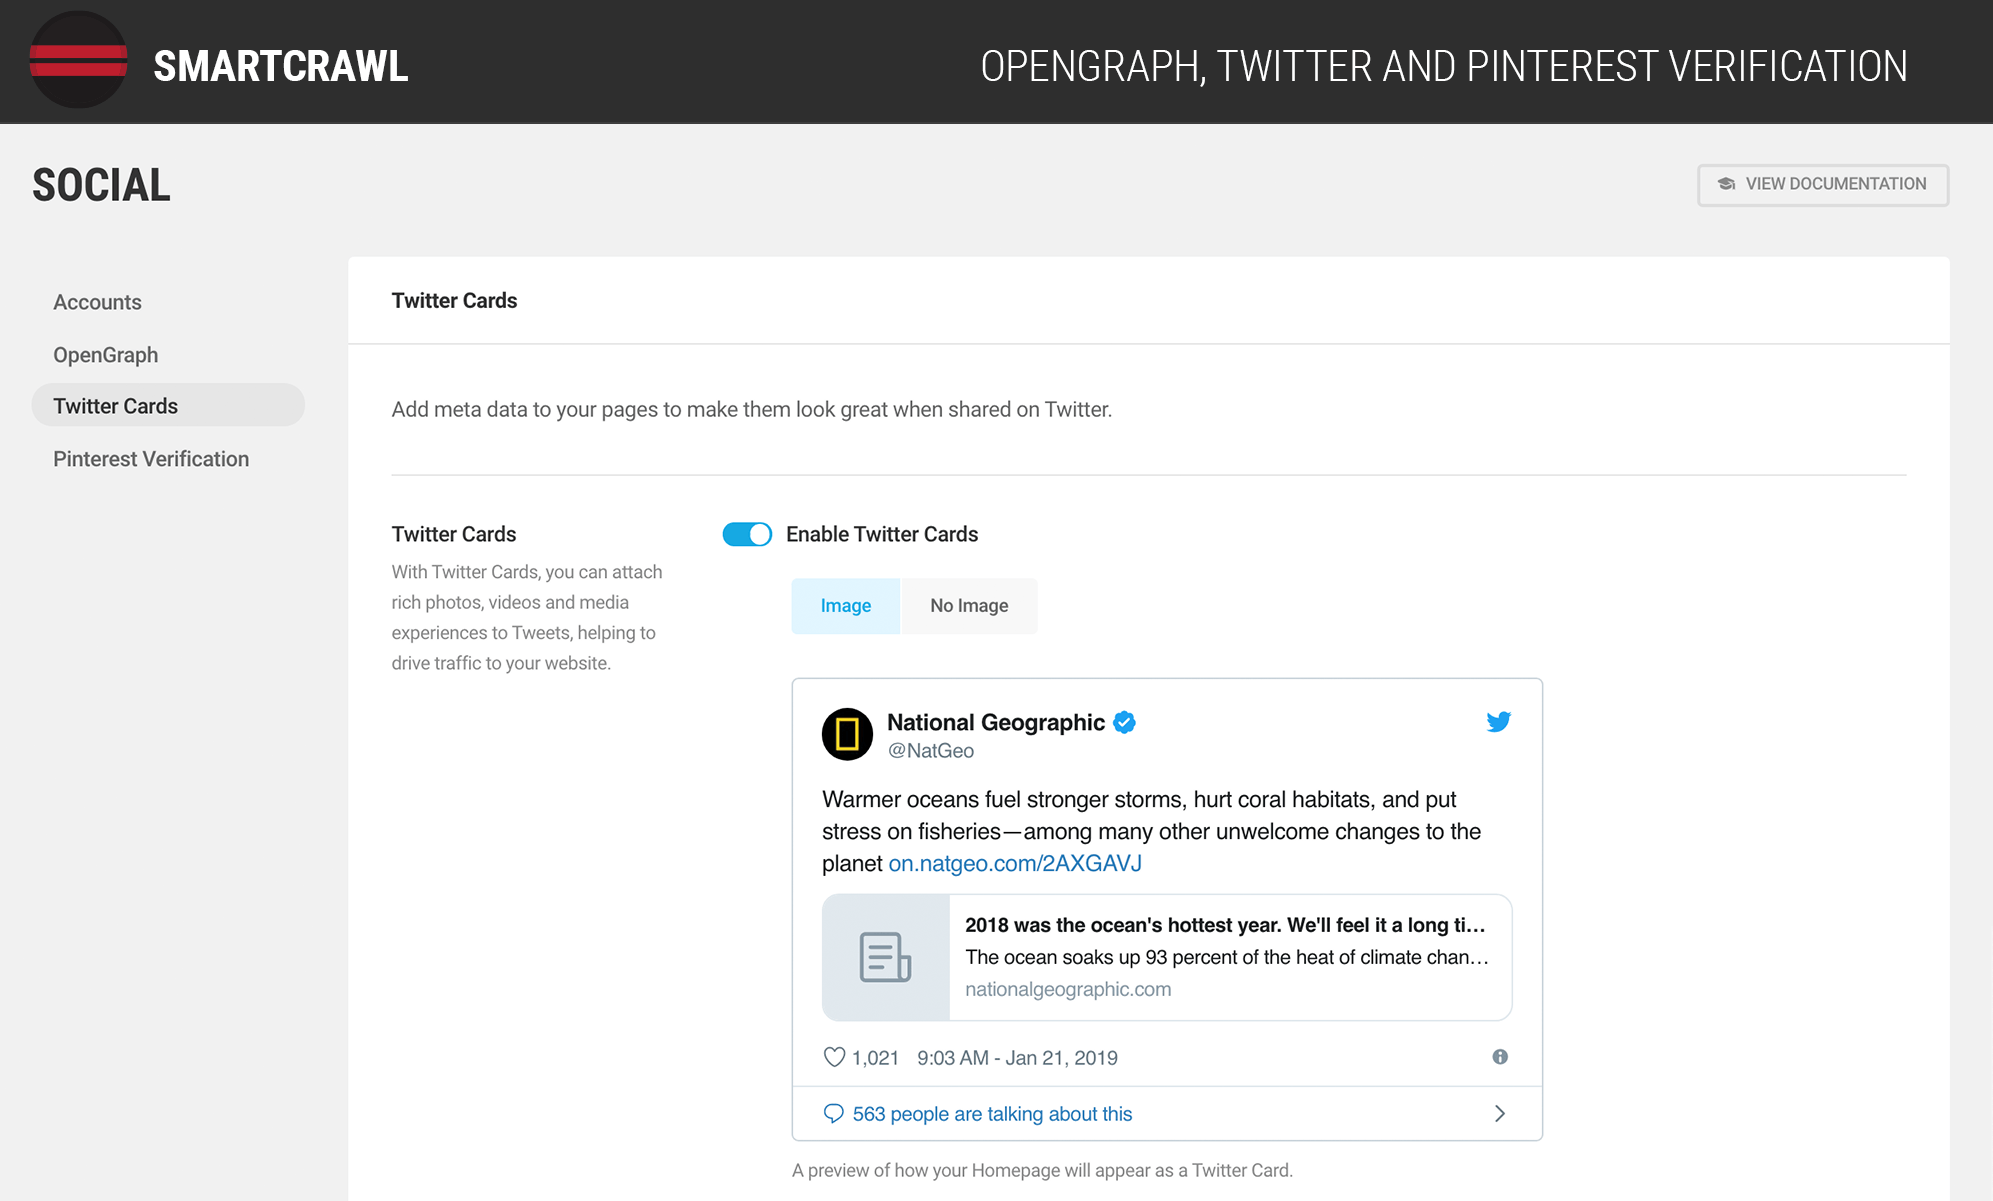 Use OpenGraph and Twitter Cards to optimize social sharing.